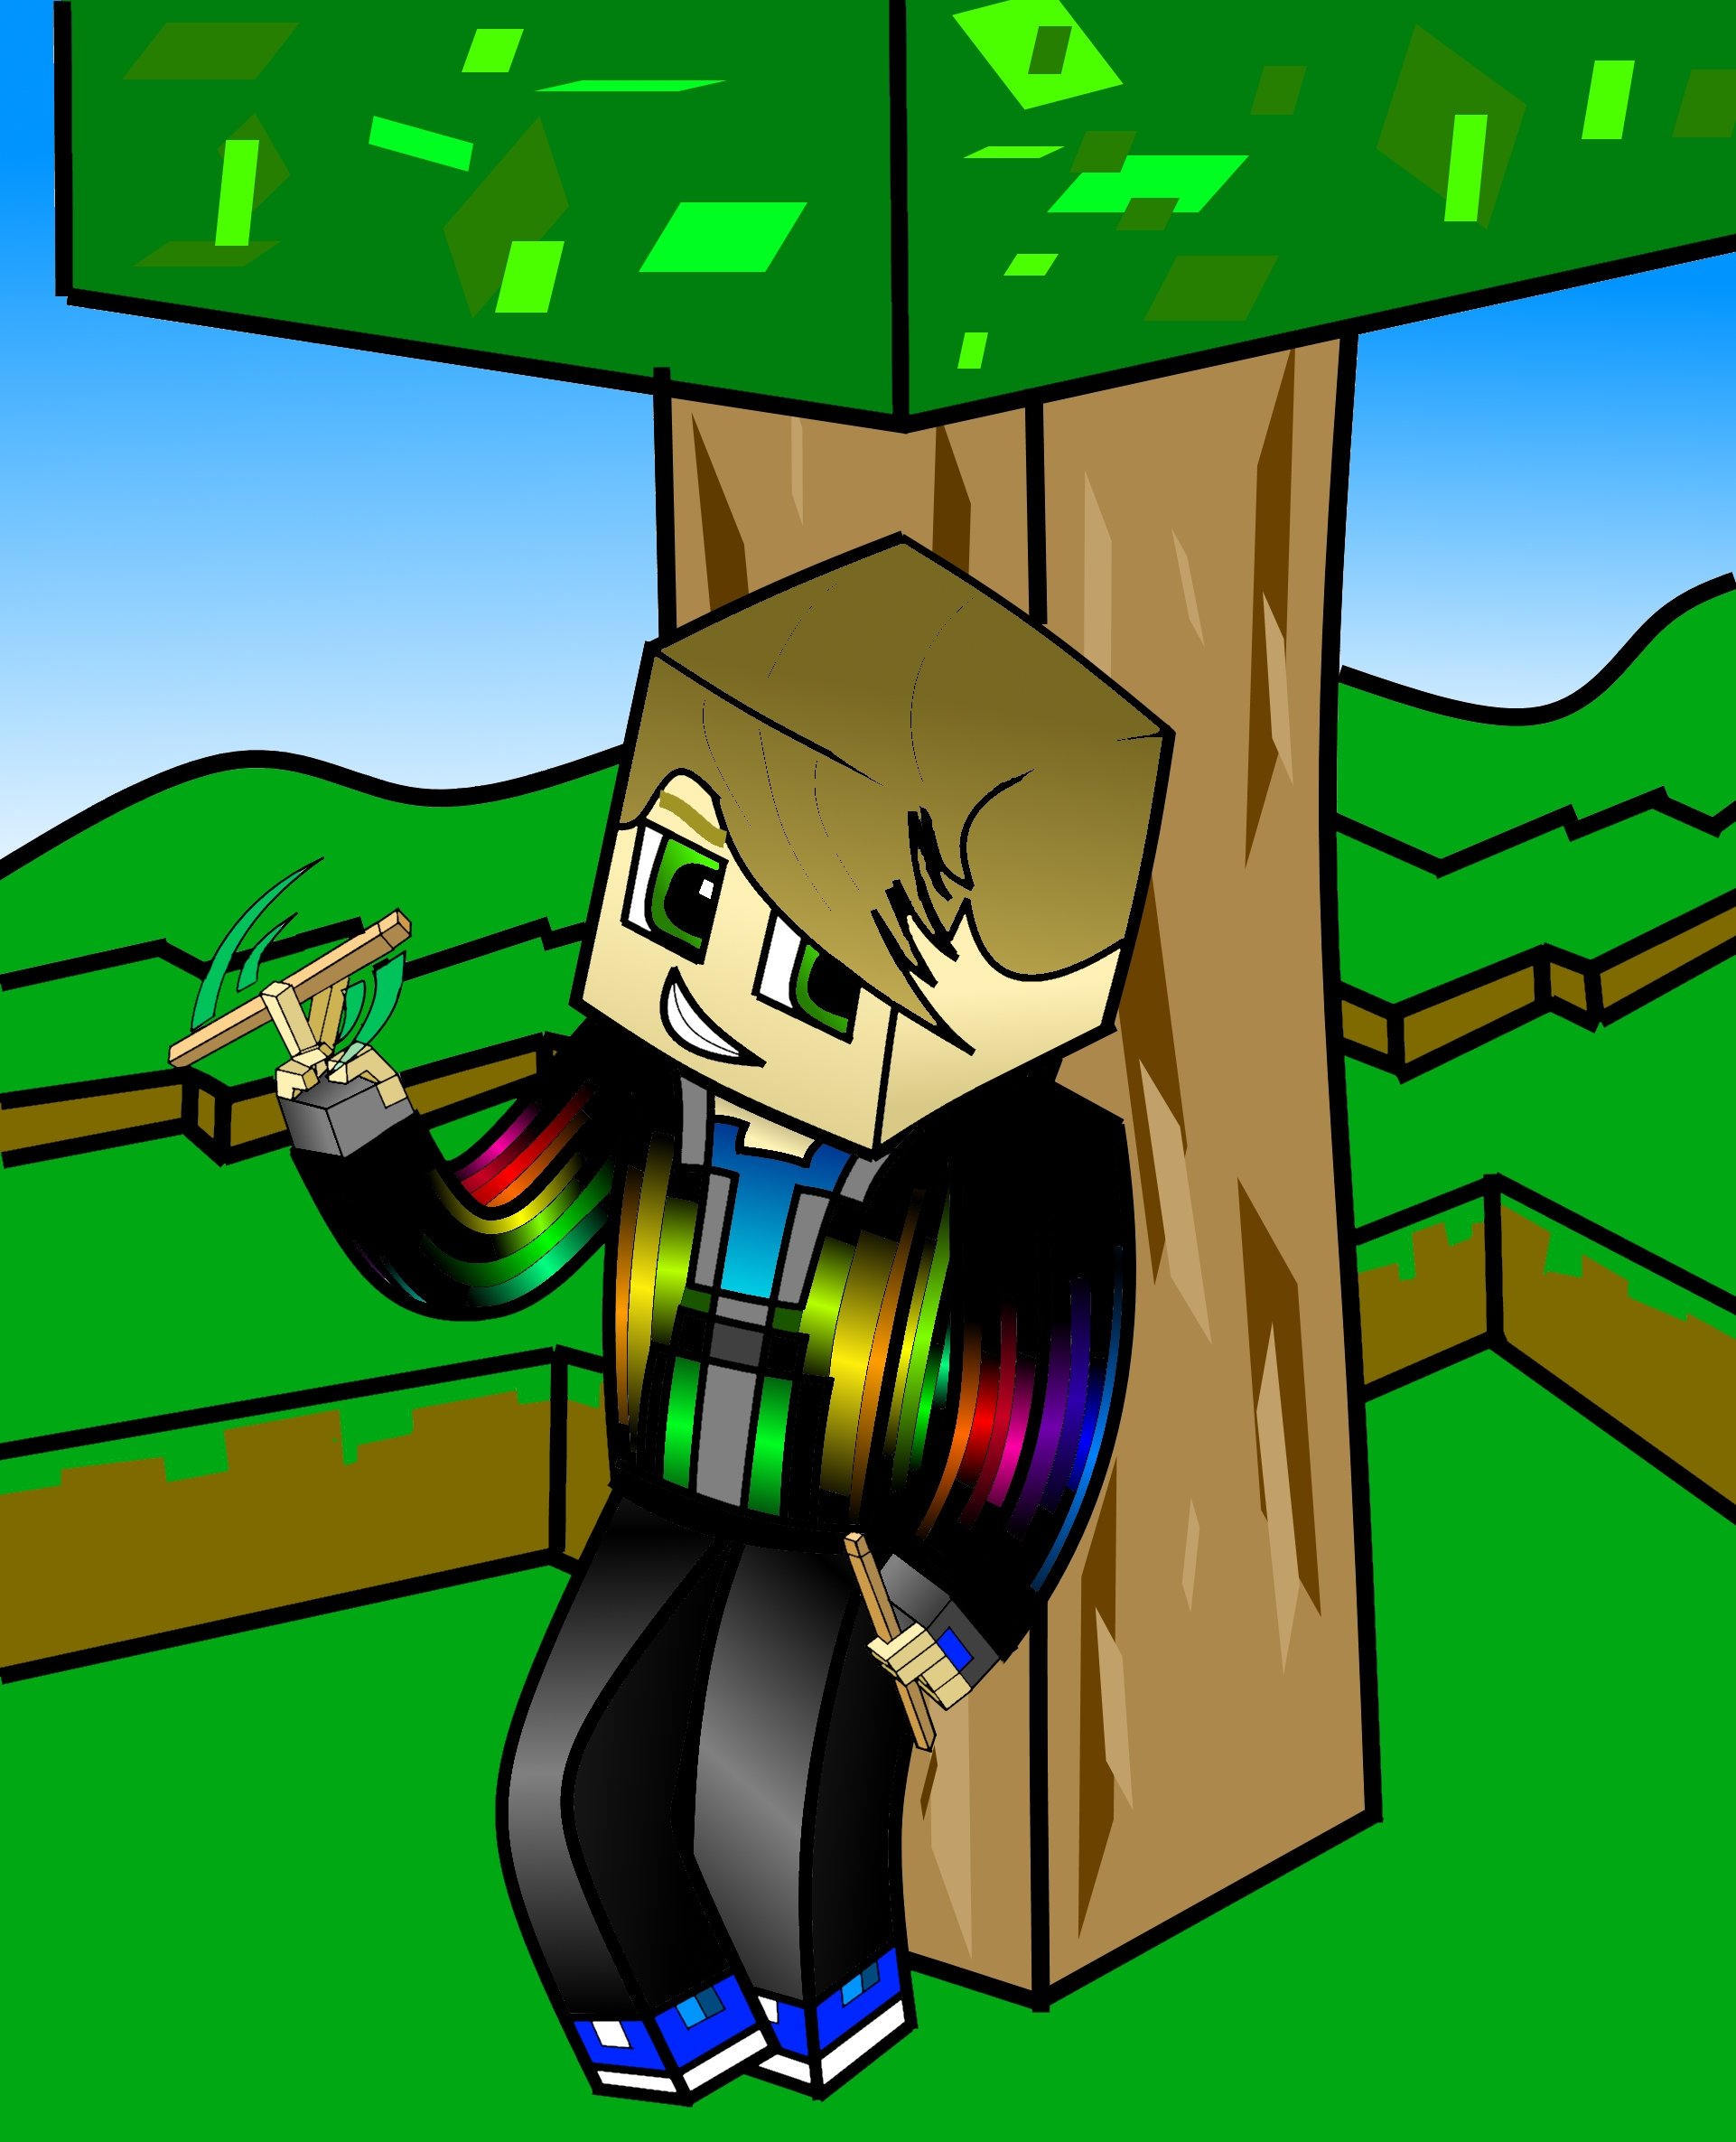 Skins from Cartoons for Minecraft PE - Apps on Google Play